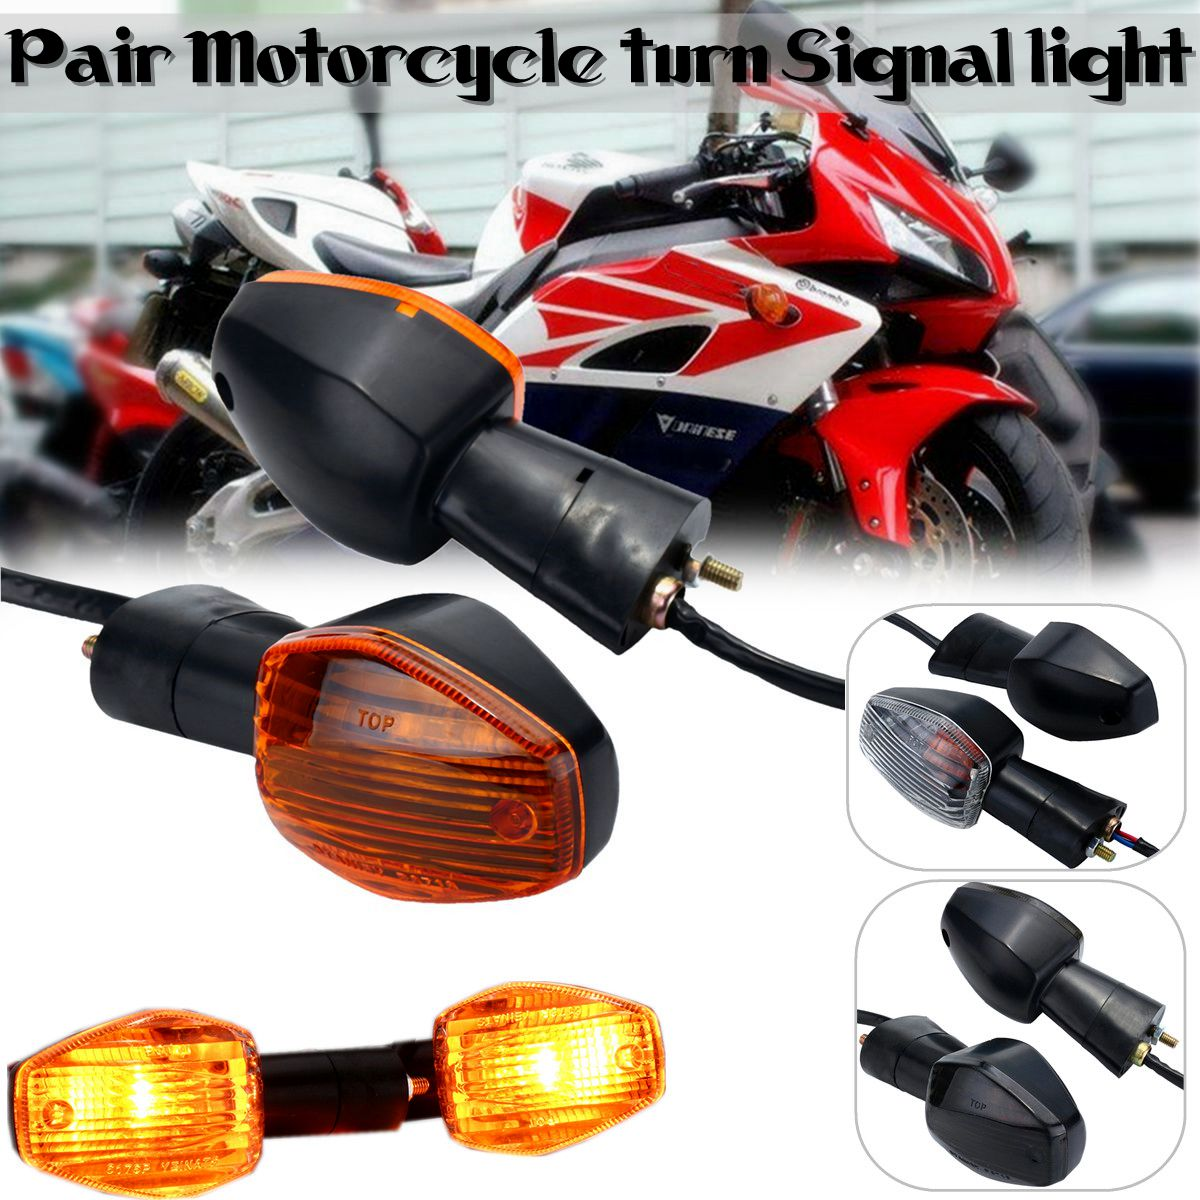 1 Pair Turn Signal Light Indicator For Honda CB400 CB1300 CBR 600 1000 RR F4 F4i Motorcycle Accessories Indicator Lamp Flashing